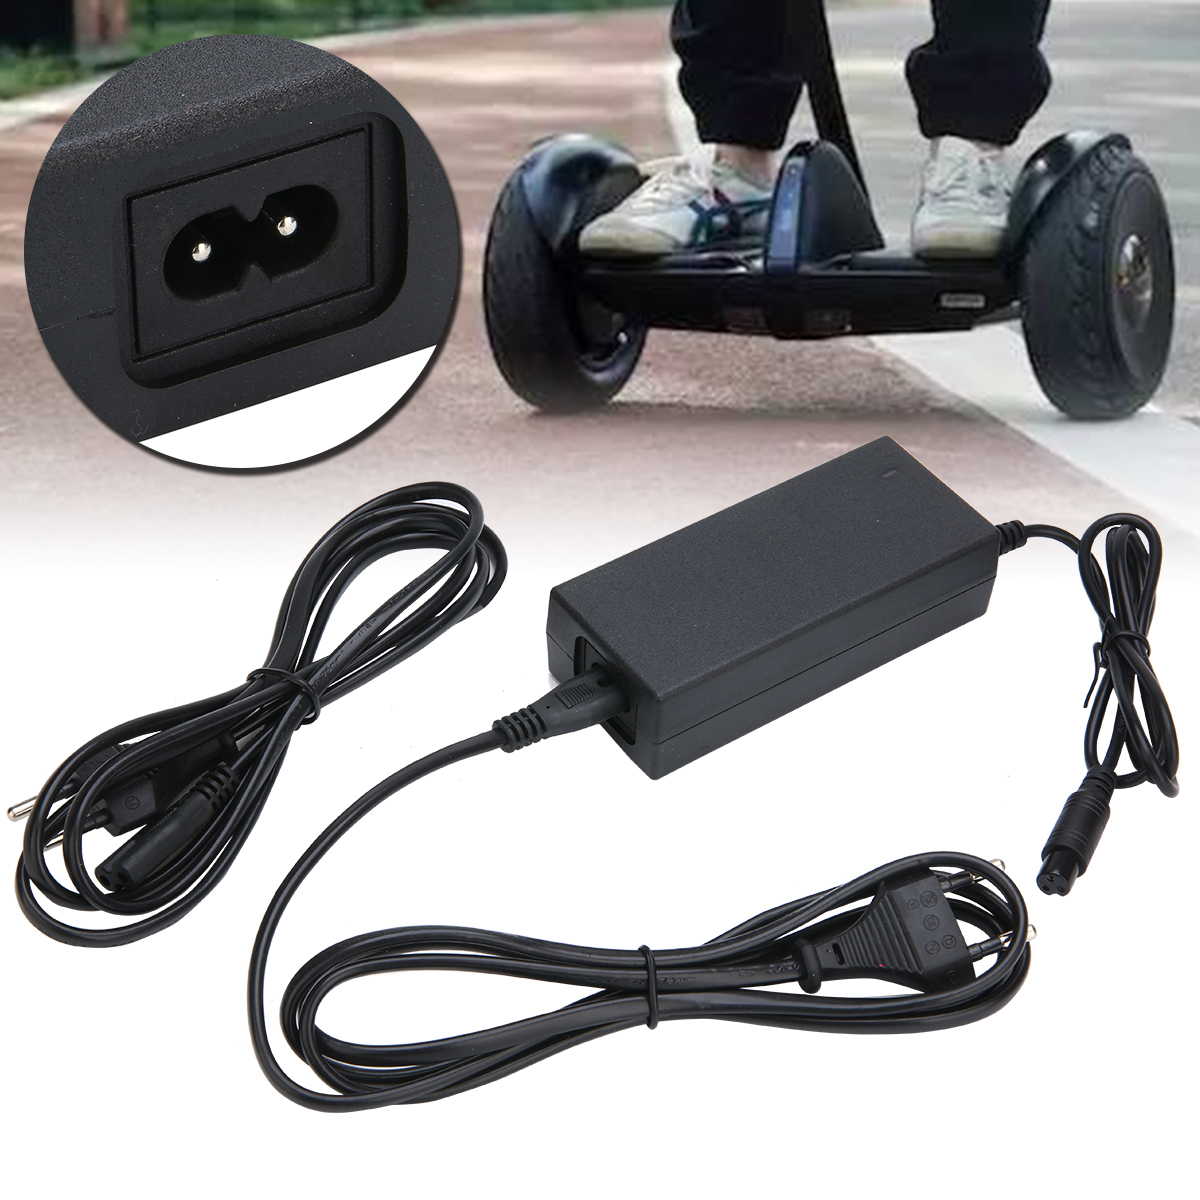 1Pcs 42V 2A Power Battery Charger Adapter Plastic and Metal For Self Smart Balance Two Wheel Scooter Parts Accessories-in Skate Board from Sports & Entertainment